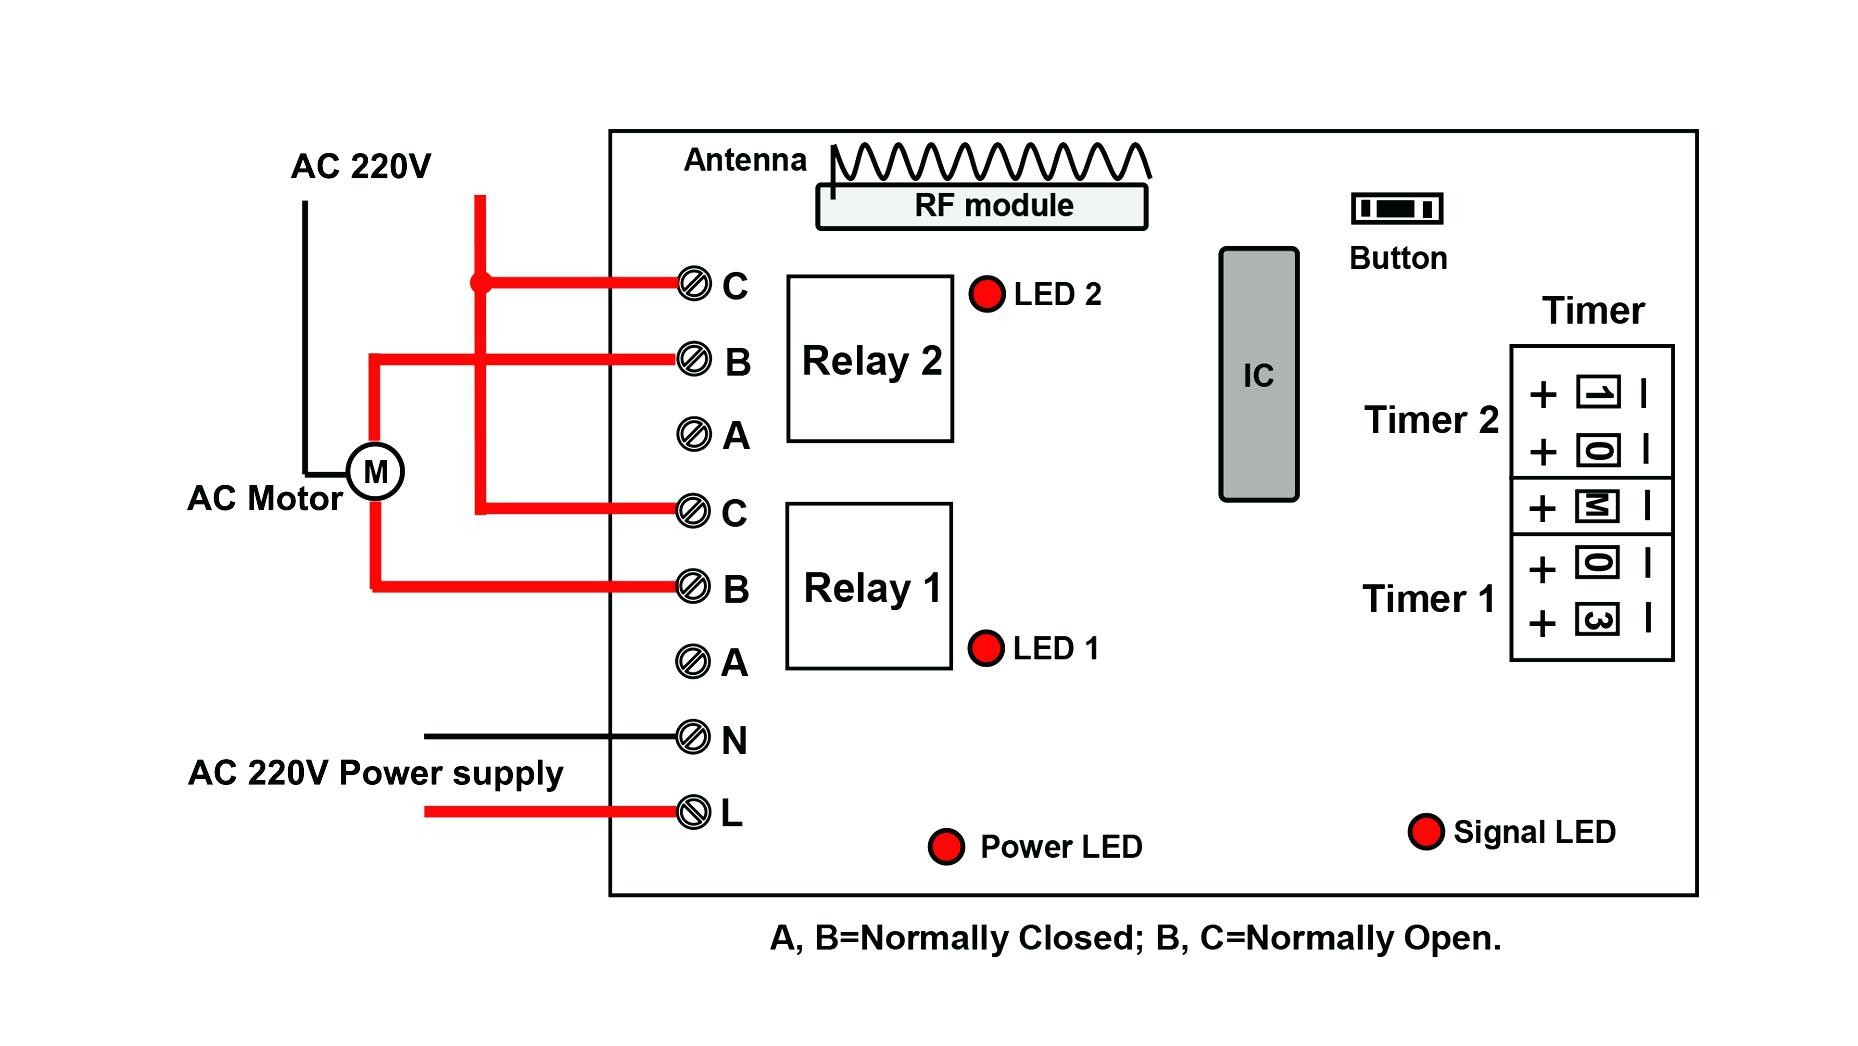 dayton time delay relay wiring diagram Collection-wiring diagram inverter omron new time delay relay wiring diagram rh sandaoil co 12 Volt Time 5-r